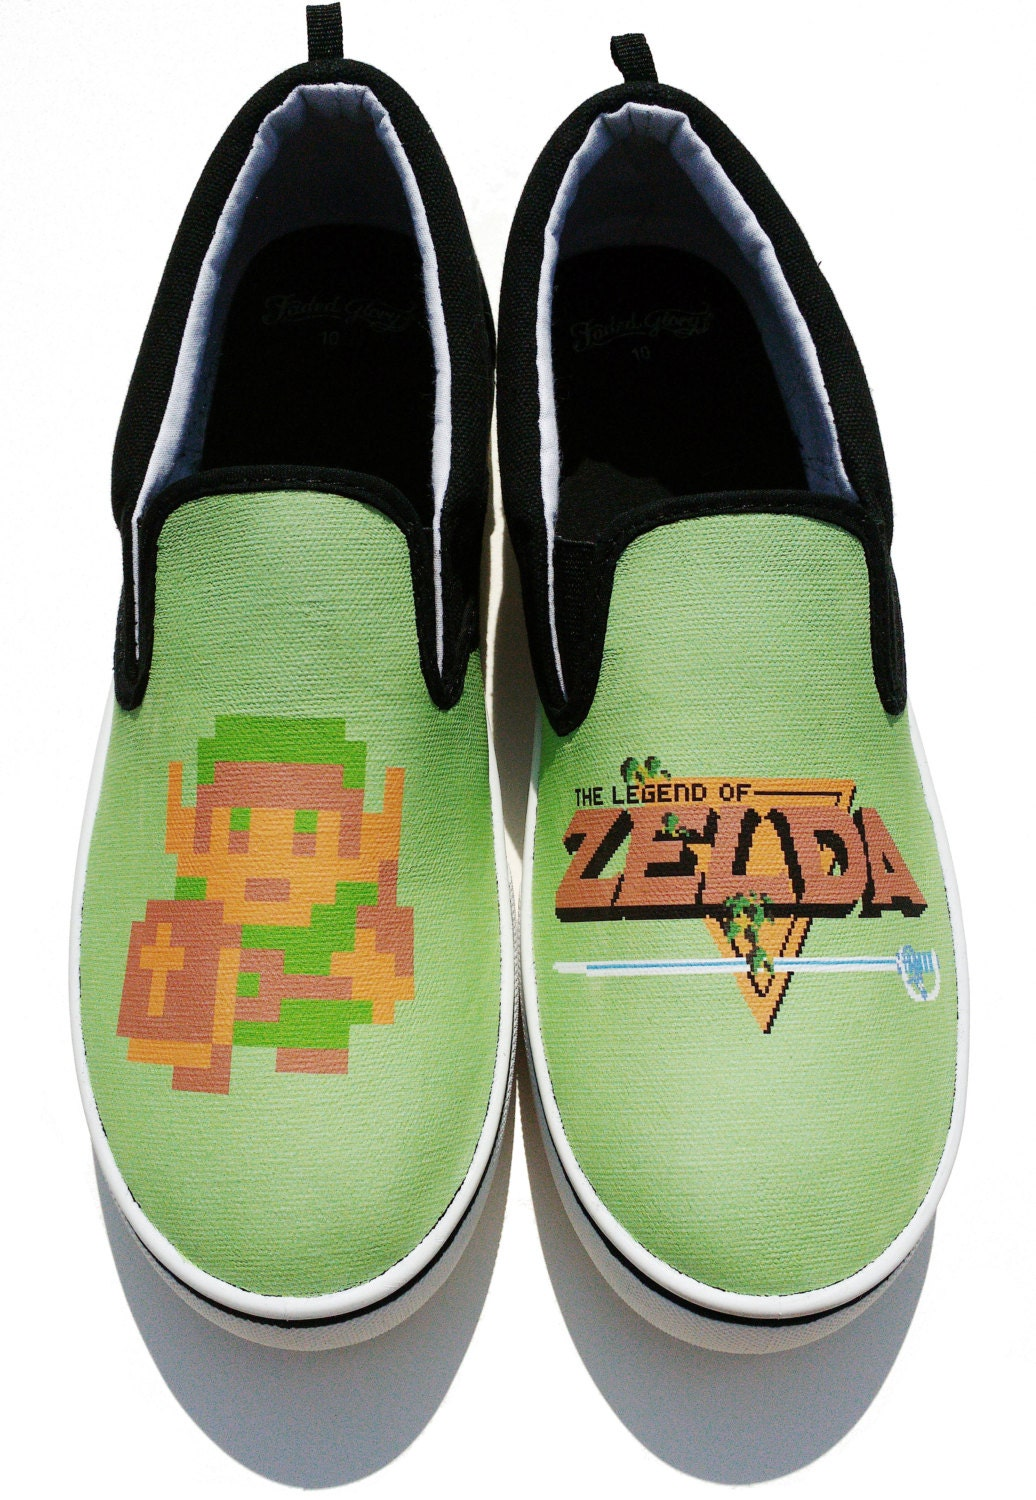 custom the legend of nes canvas shoes